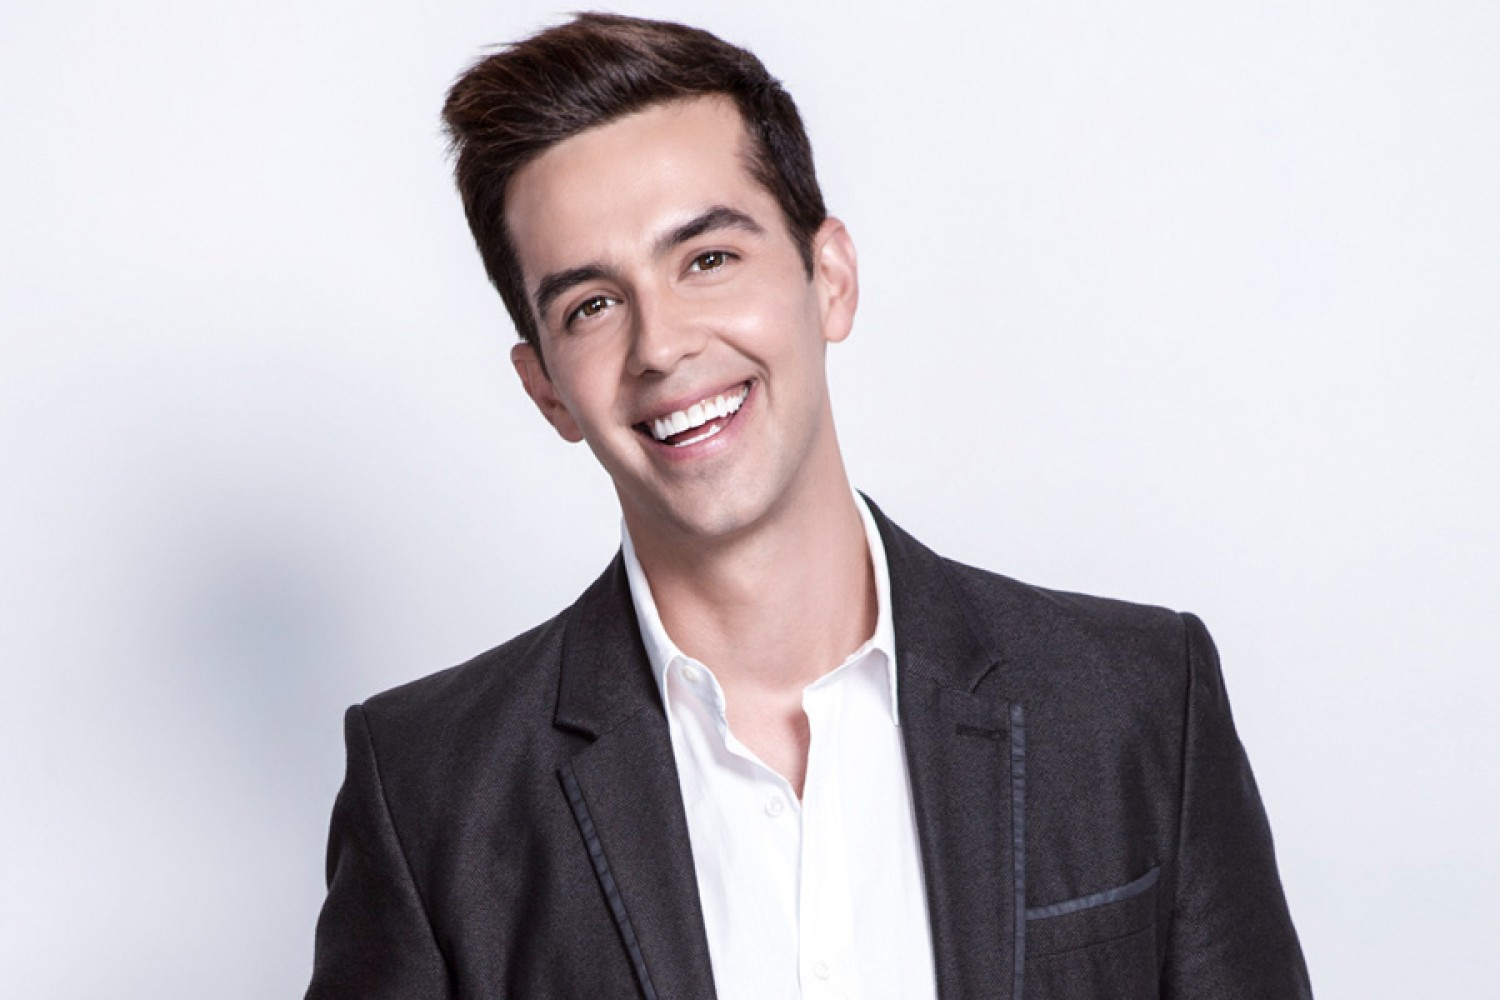 Michael Carbonaro Liveevent Item Maxwell C King Center For The